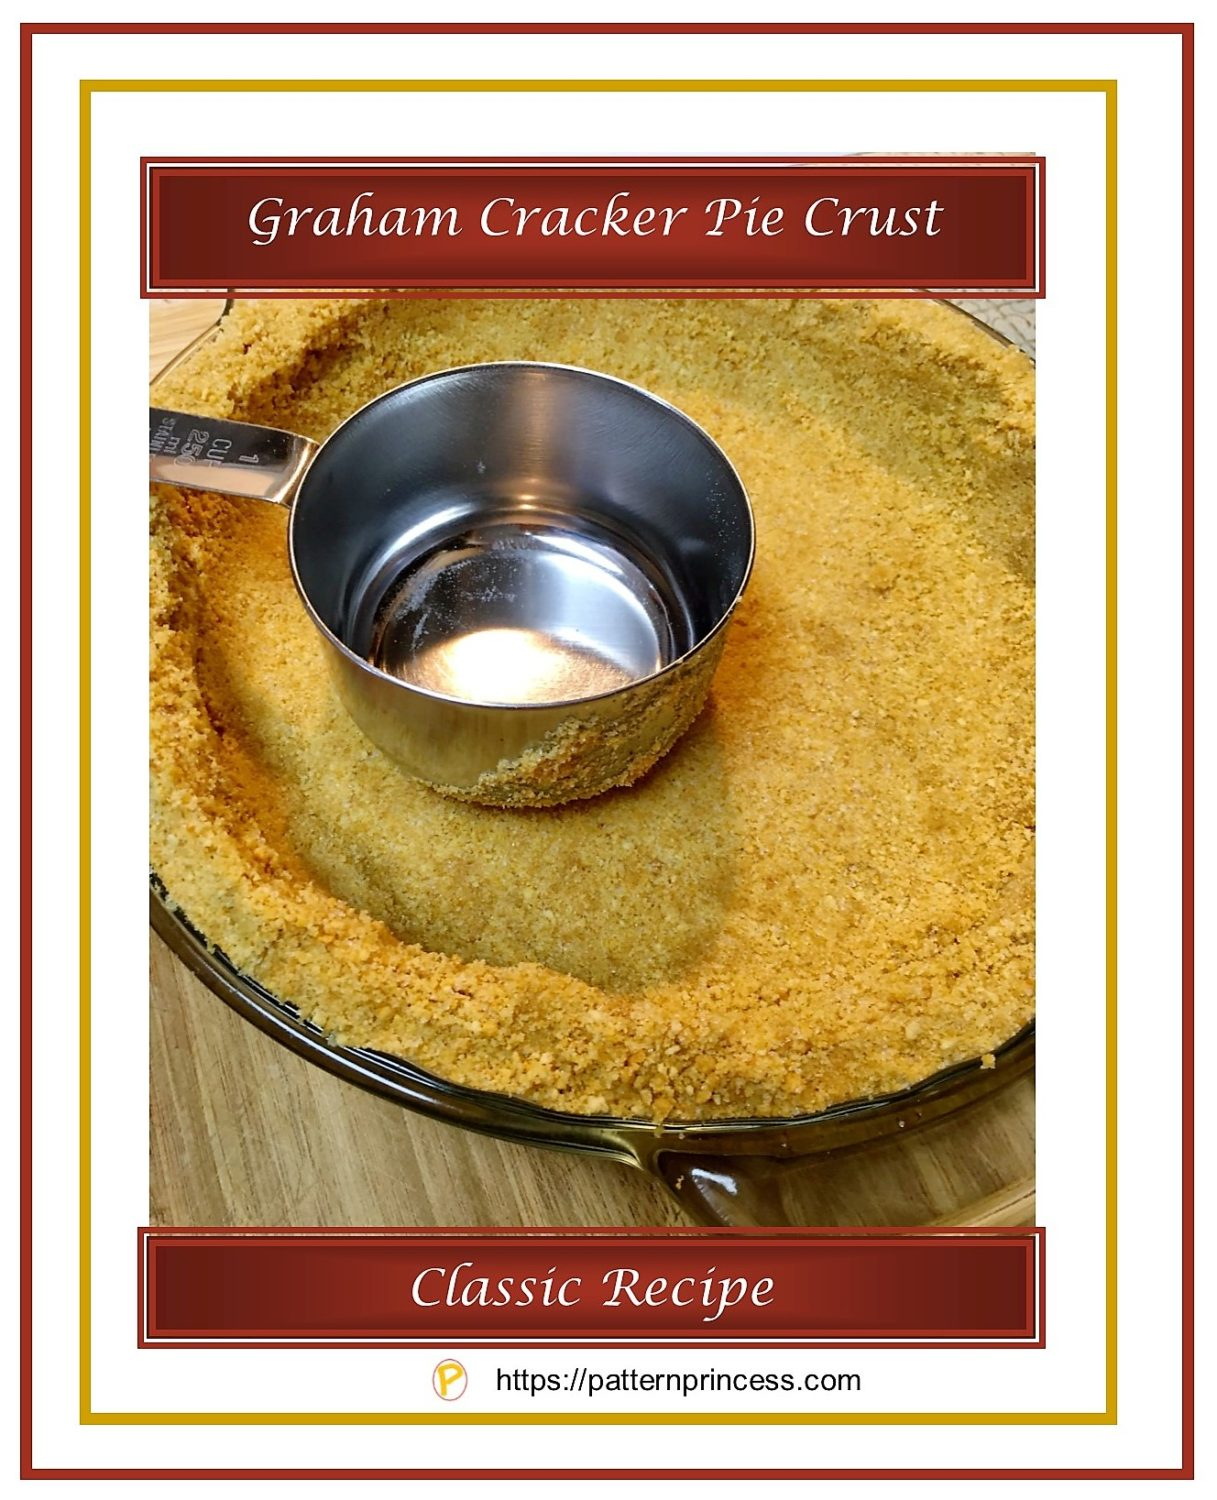 Graham Cracker Pie Crust 1